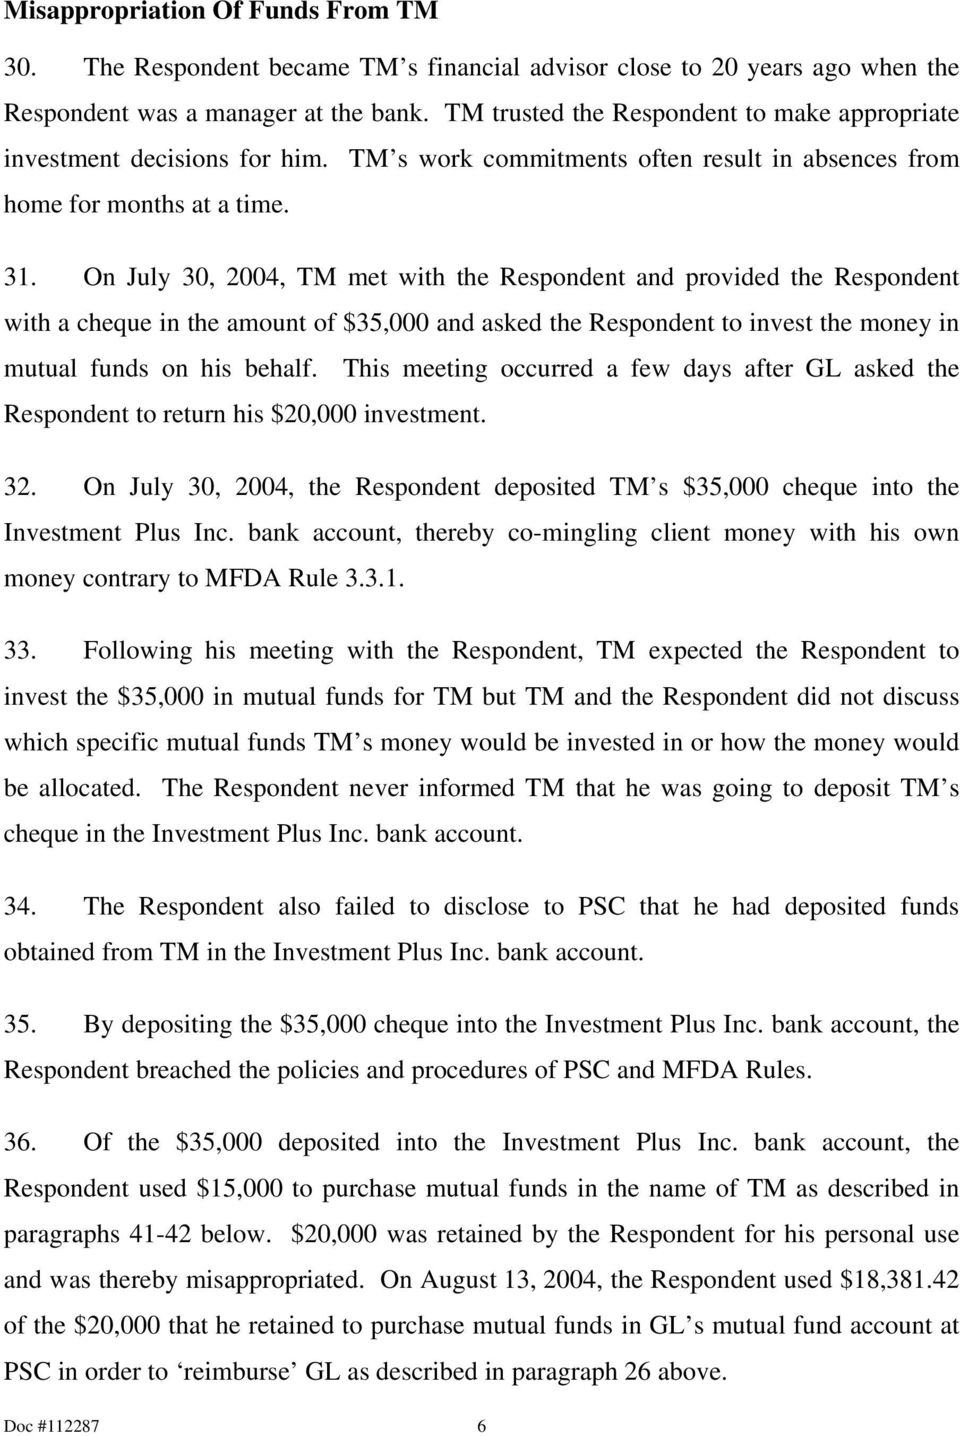 On July 30, 2004, TM met with the Respondent and provided the Respondent with a cheque in the amount of $35,000 and asked the Respondent to invest the money in mutual funds on his behalf.